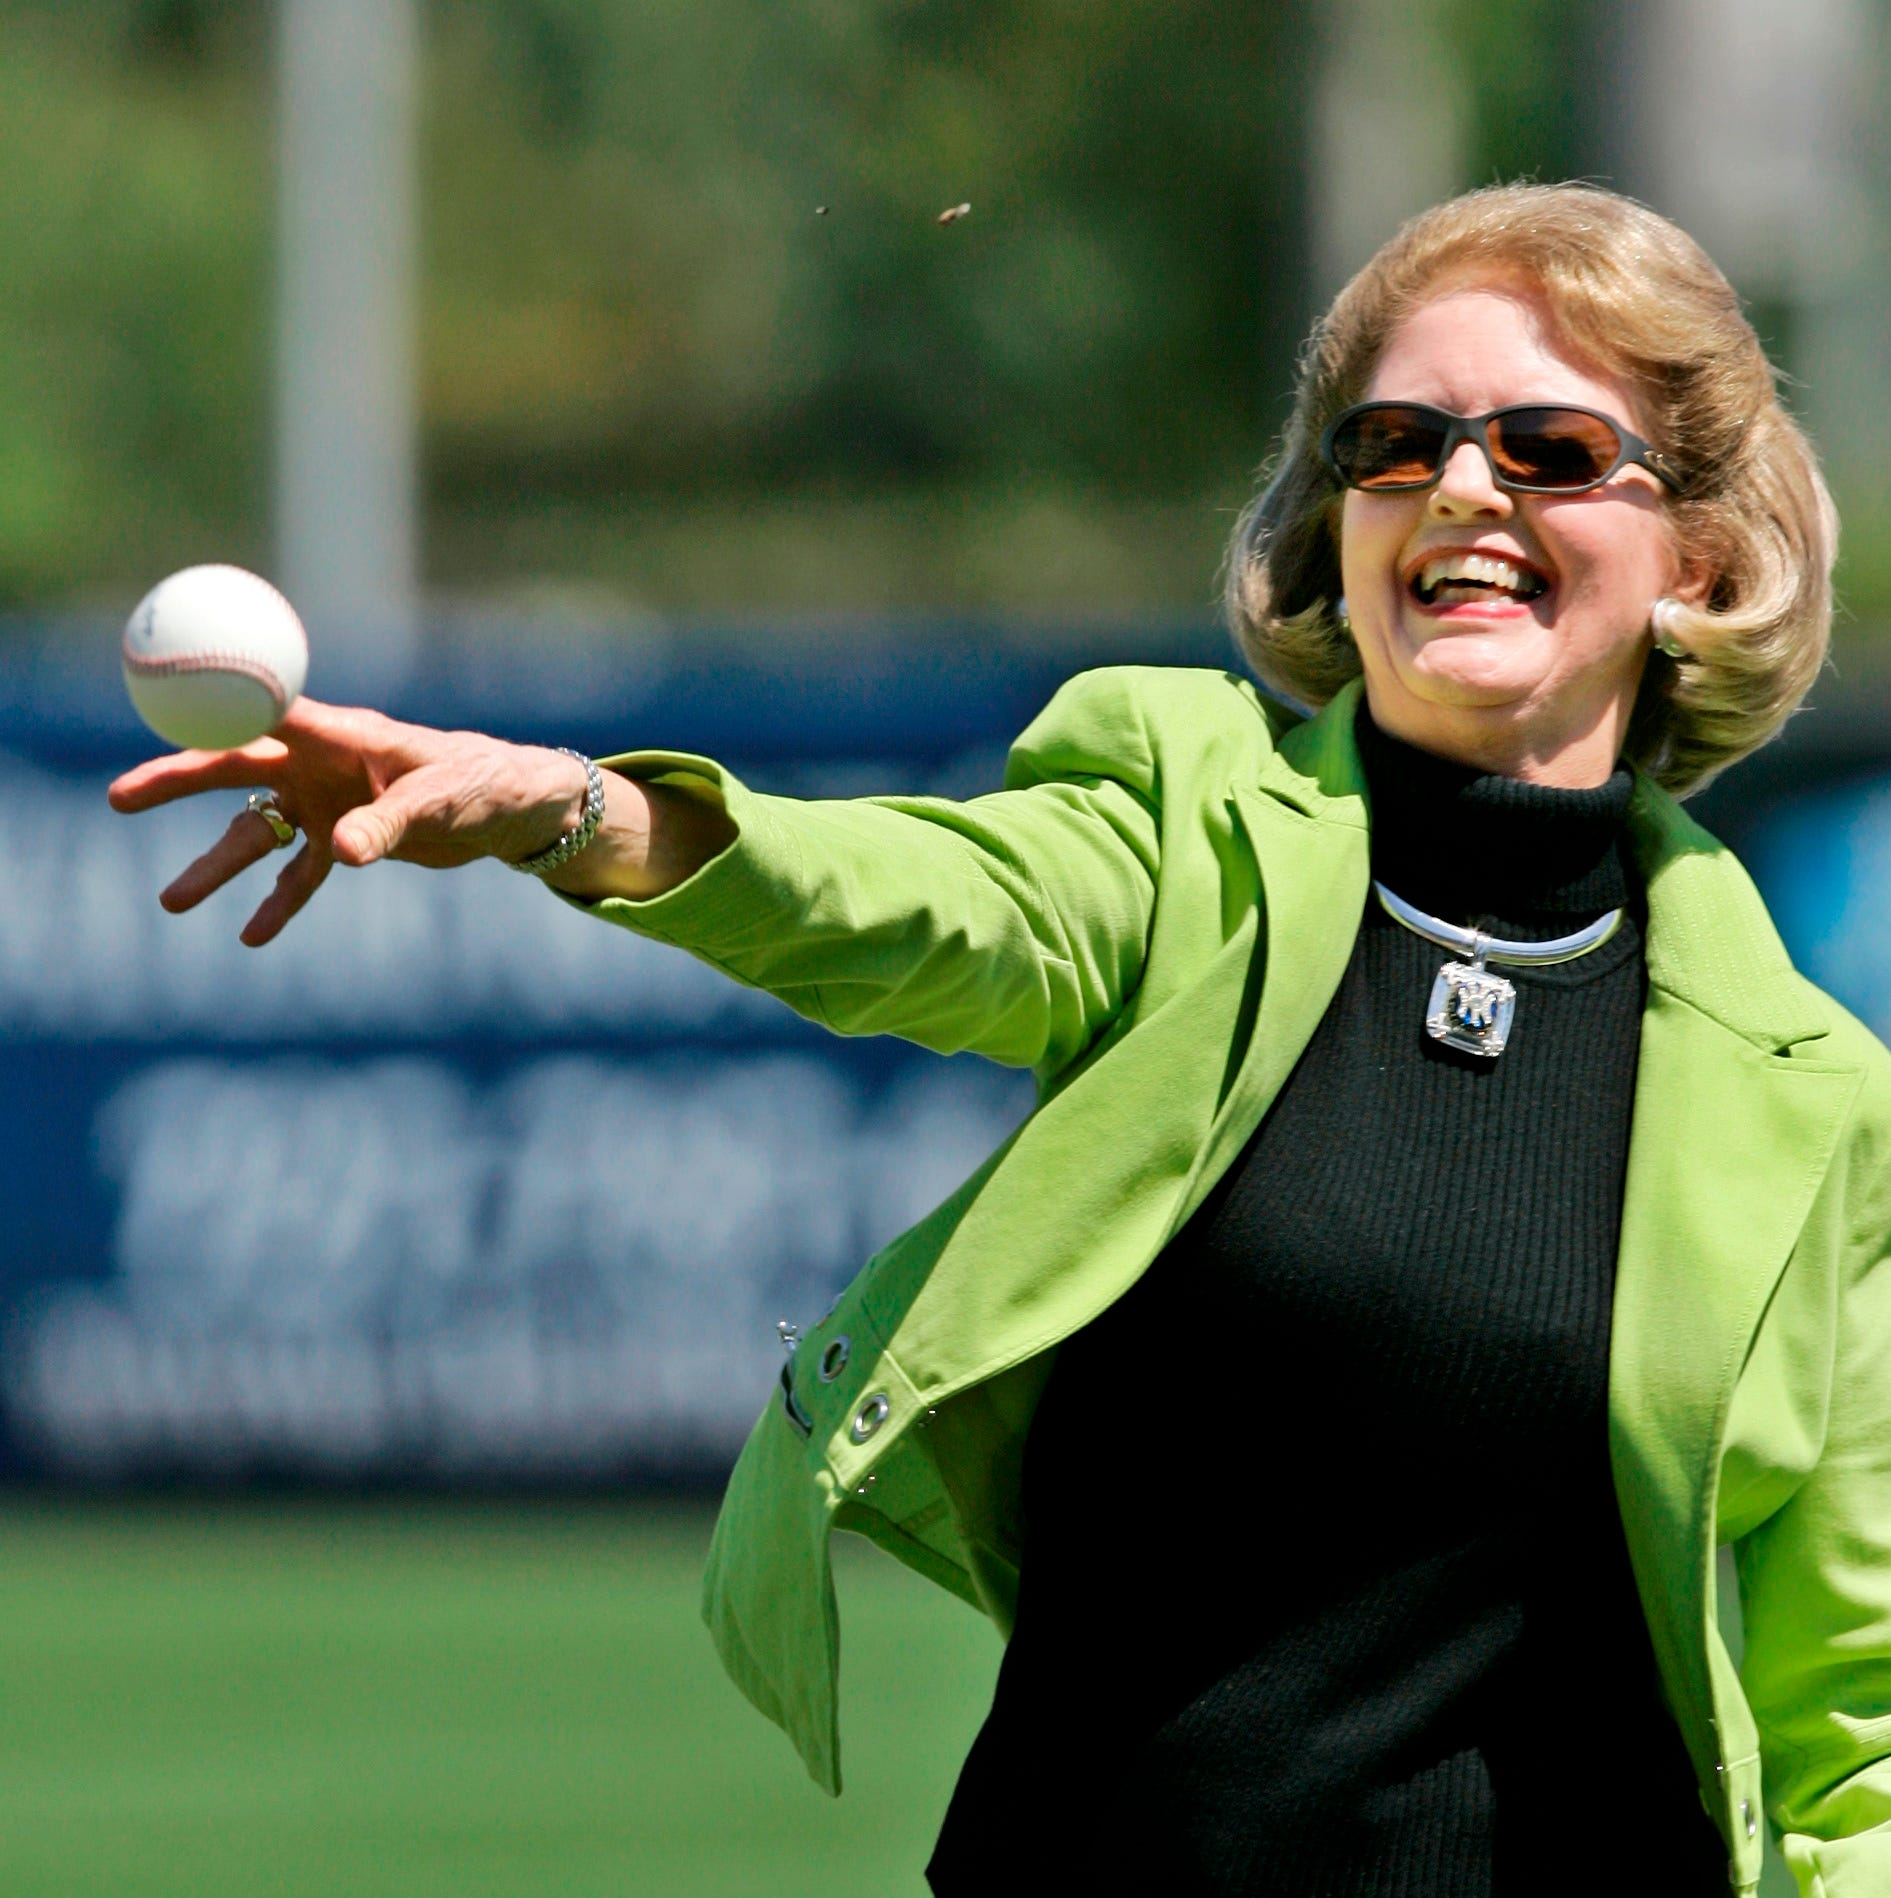 Joan Steinbrenner, wife of former New York Yankees owner, dies at 83